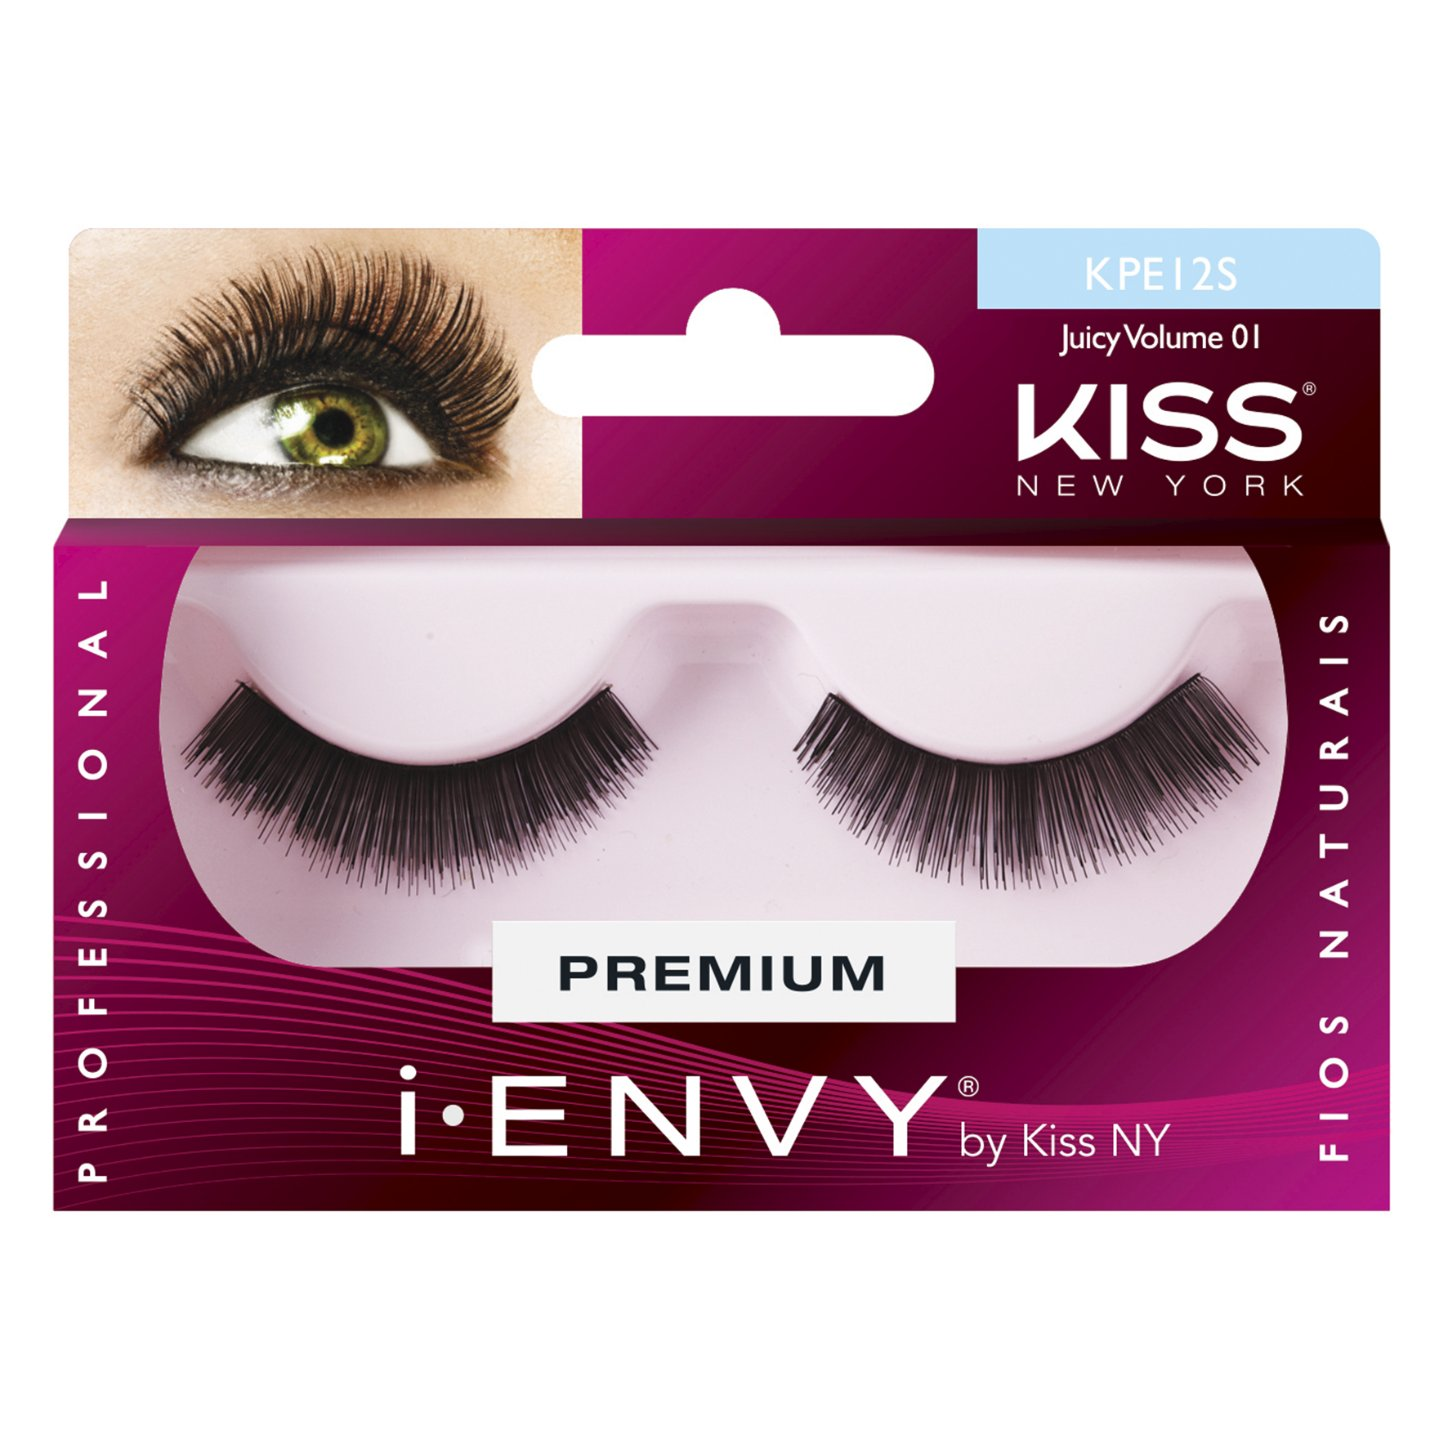 cilios-posticos-juicy-volume-01-i-envy-kiss-new-york-kpe12s-maquiagem-e-cia